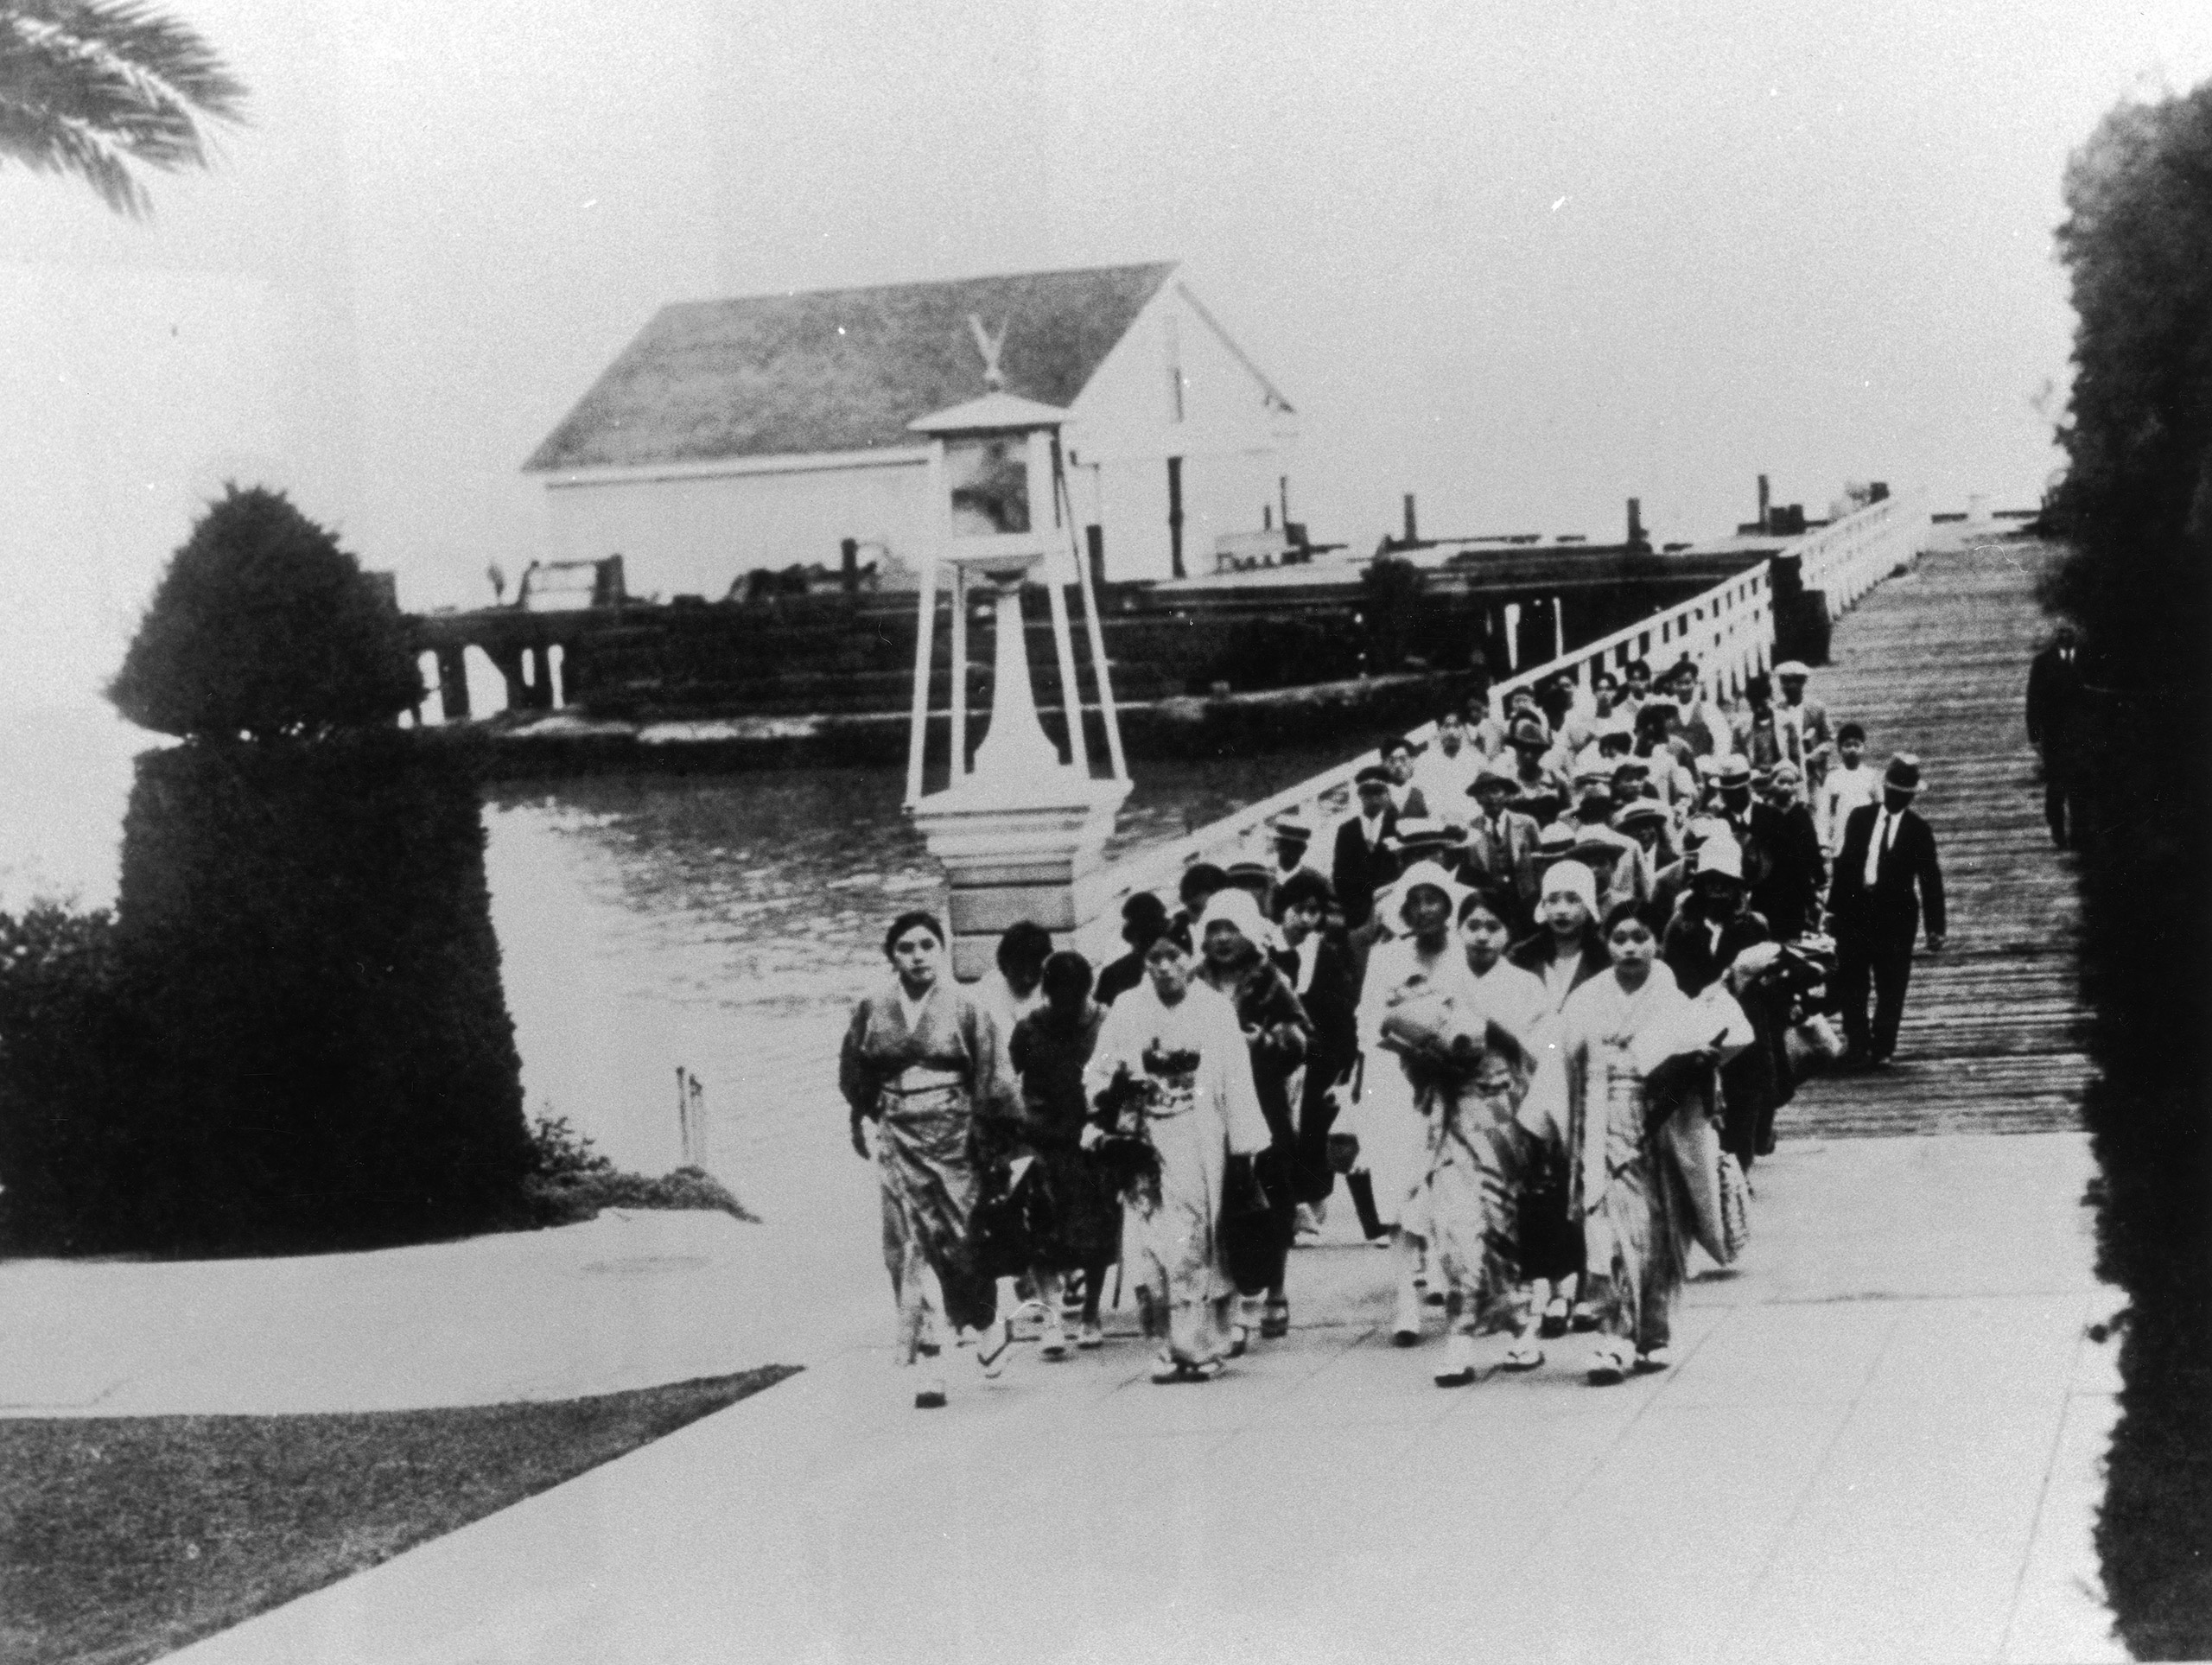 Asian Immigrants arriving at the Quarantine Station at Angel Island, San Francisco Bay ca. 1911.